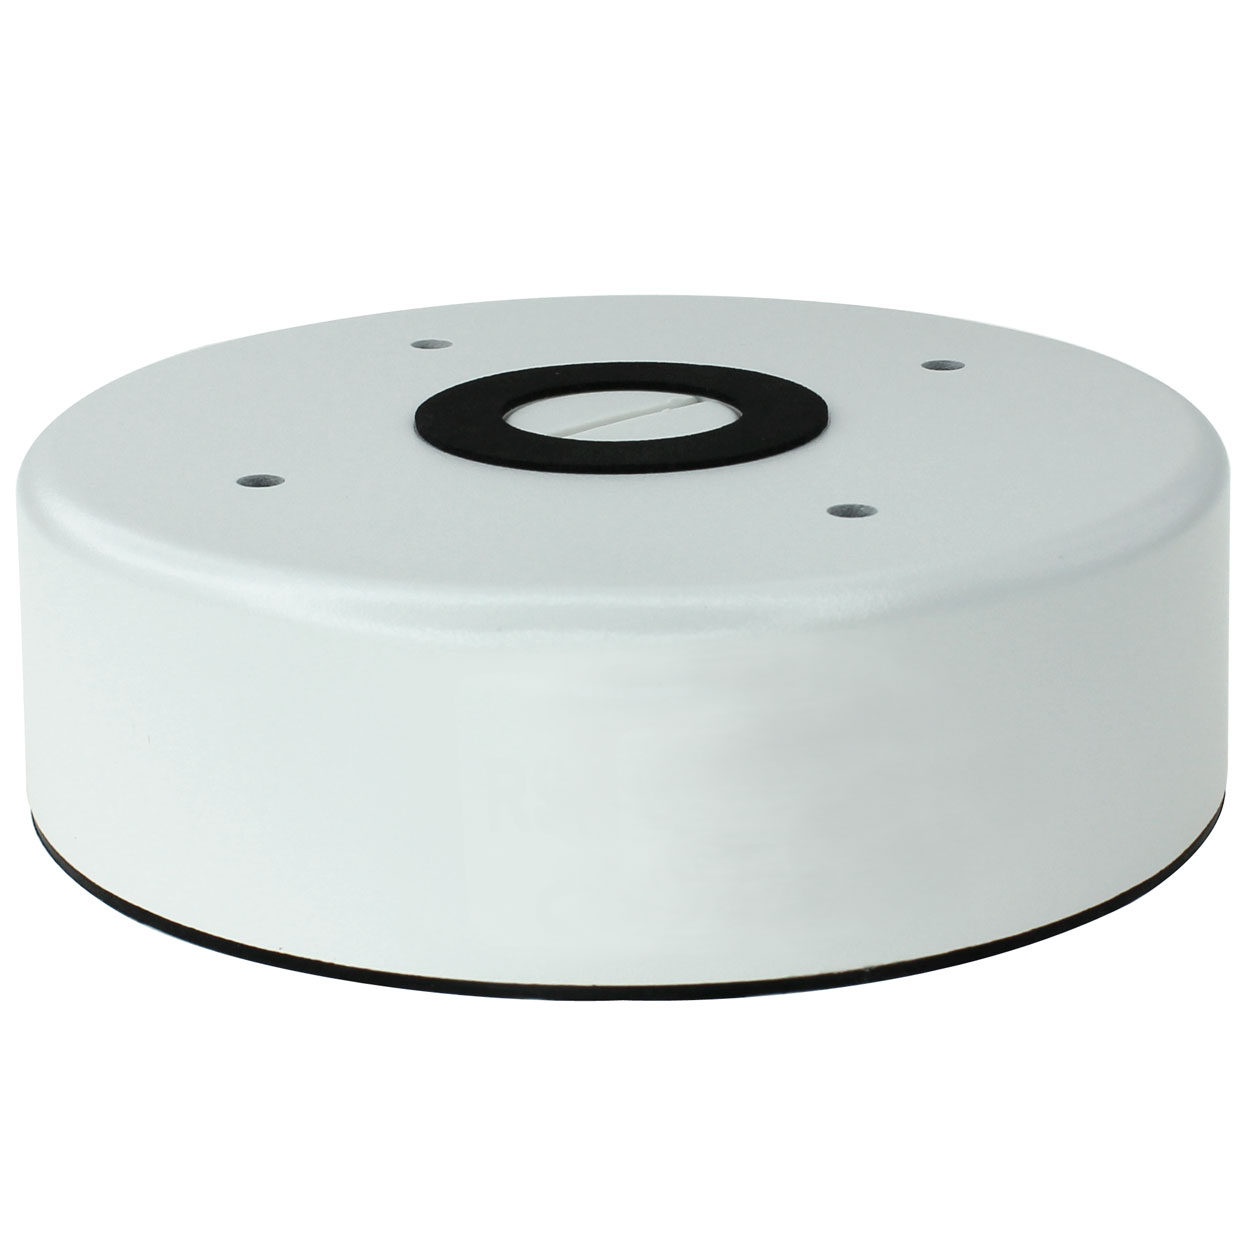 Junction Box for Vandal Proof Dome Cameras, 5.8 x 1.8 inches - White